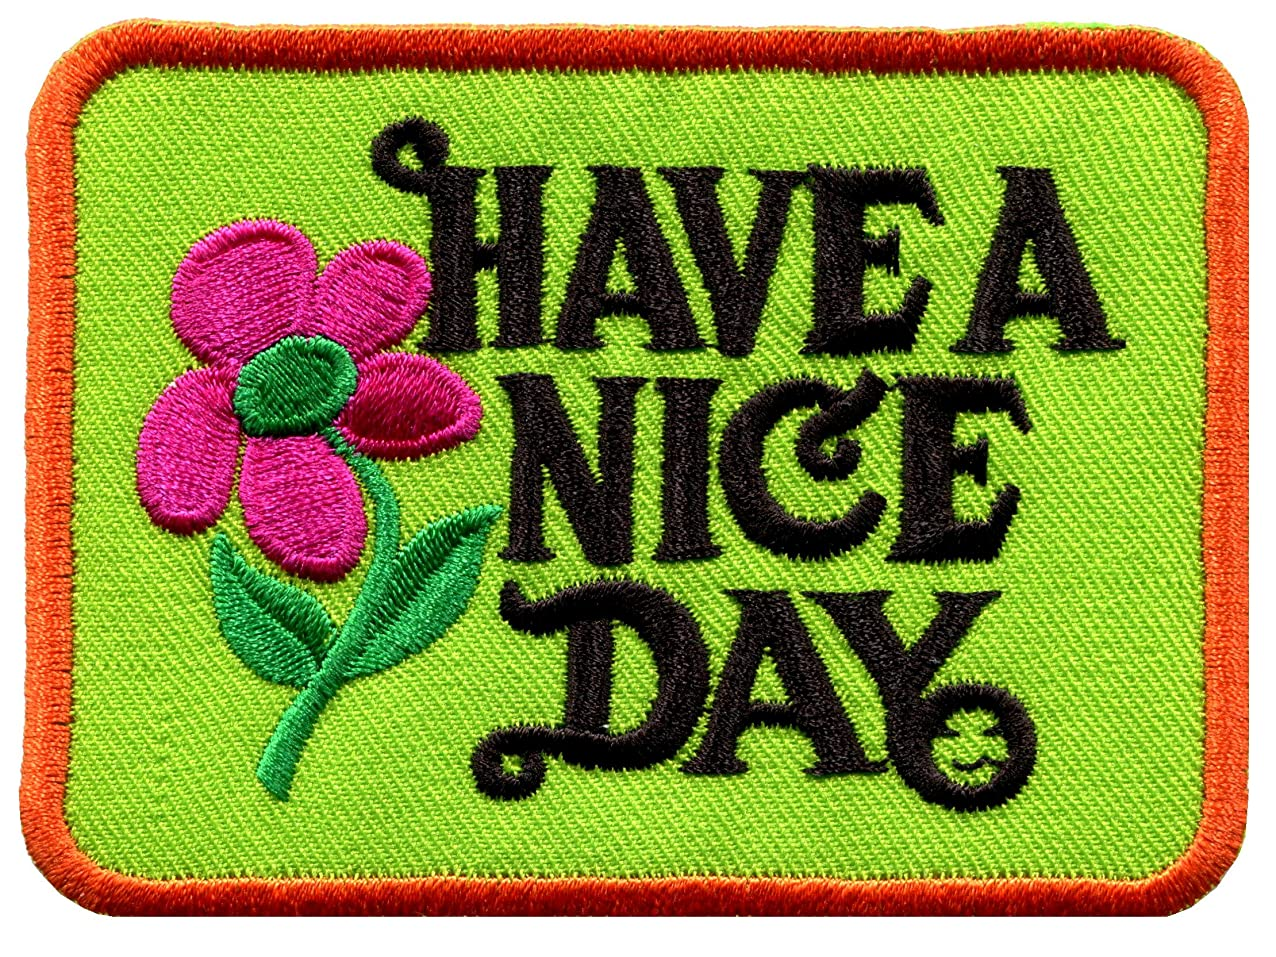 Have a Nice Day 70s slogan hippie retro boho weed love applique iron-on patch new fwcandyulkggj491